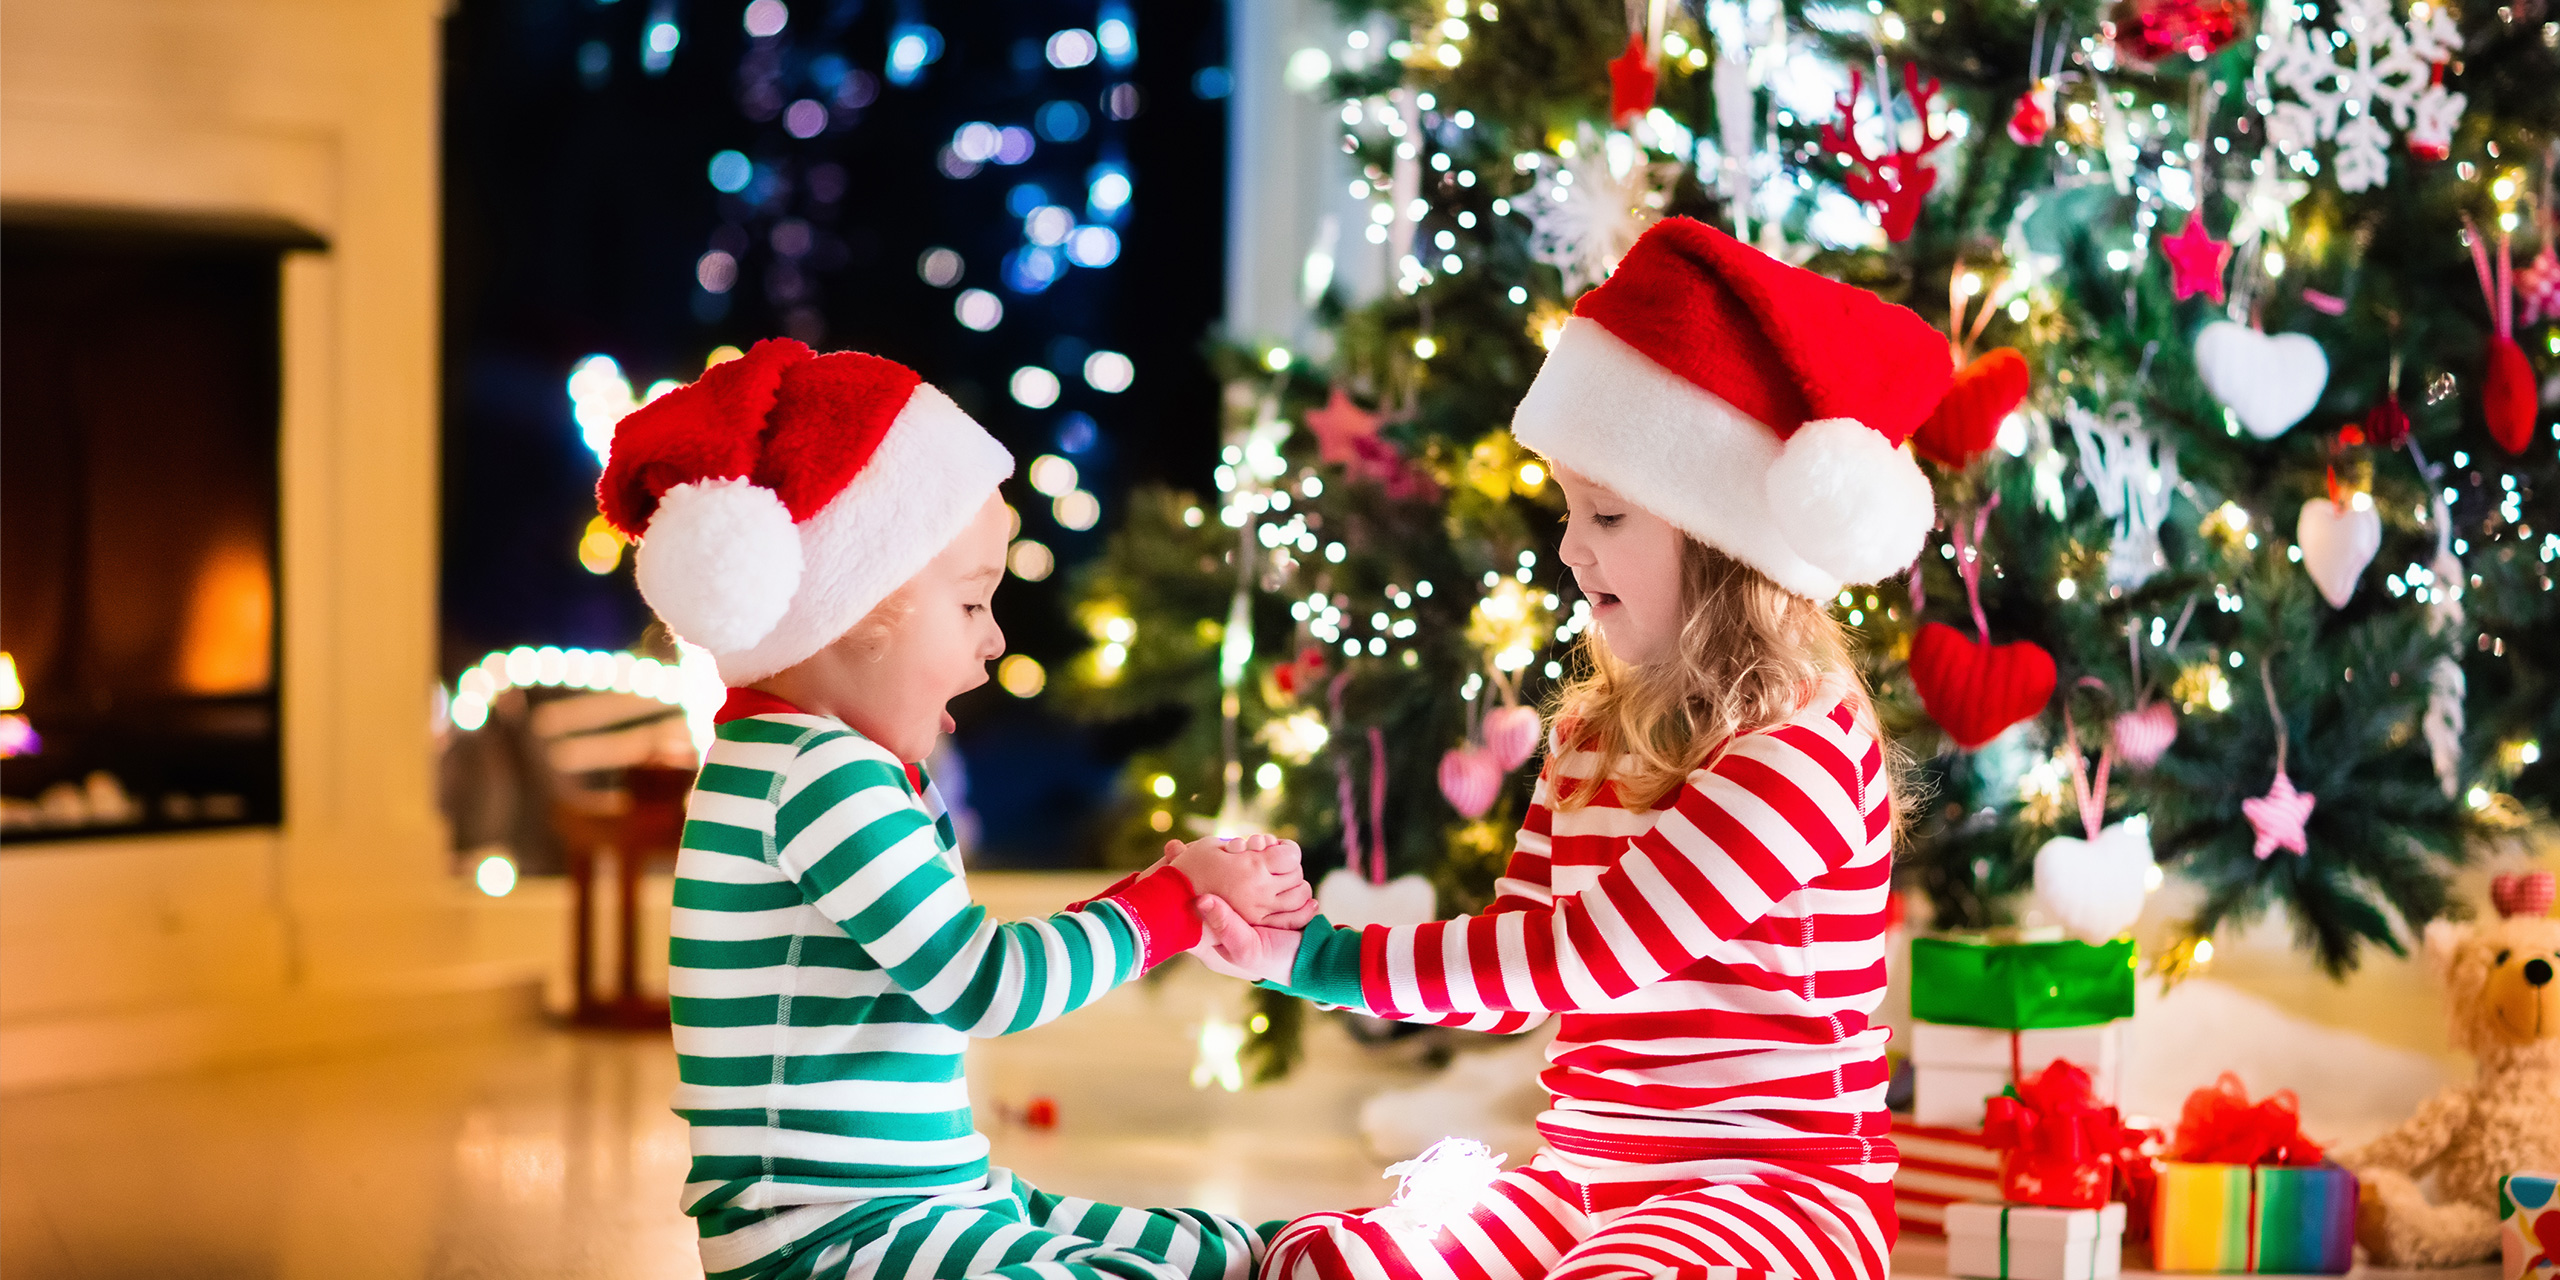 Kids Christmas.13 Best Kids Matching Christmas Pajamas For 2019 Family